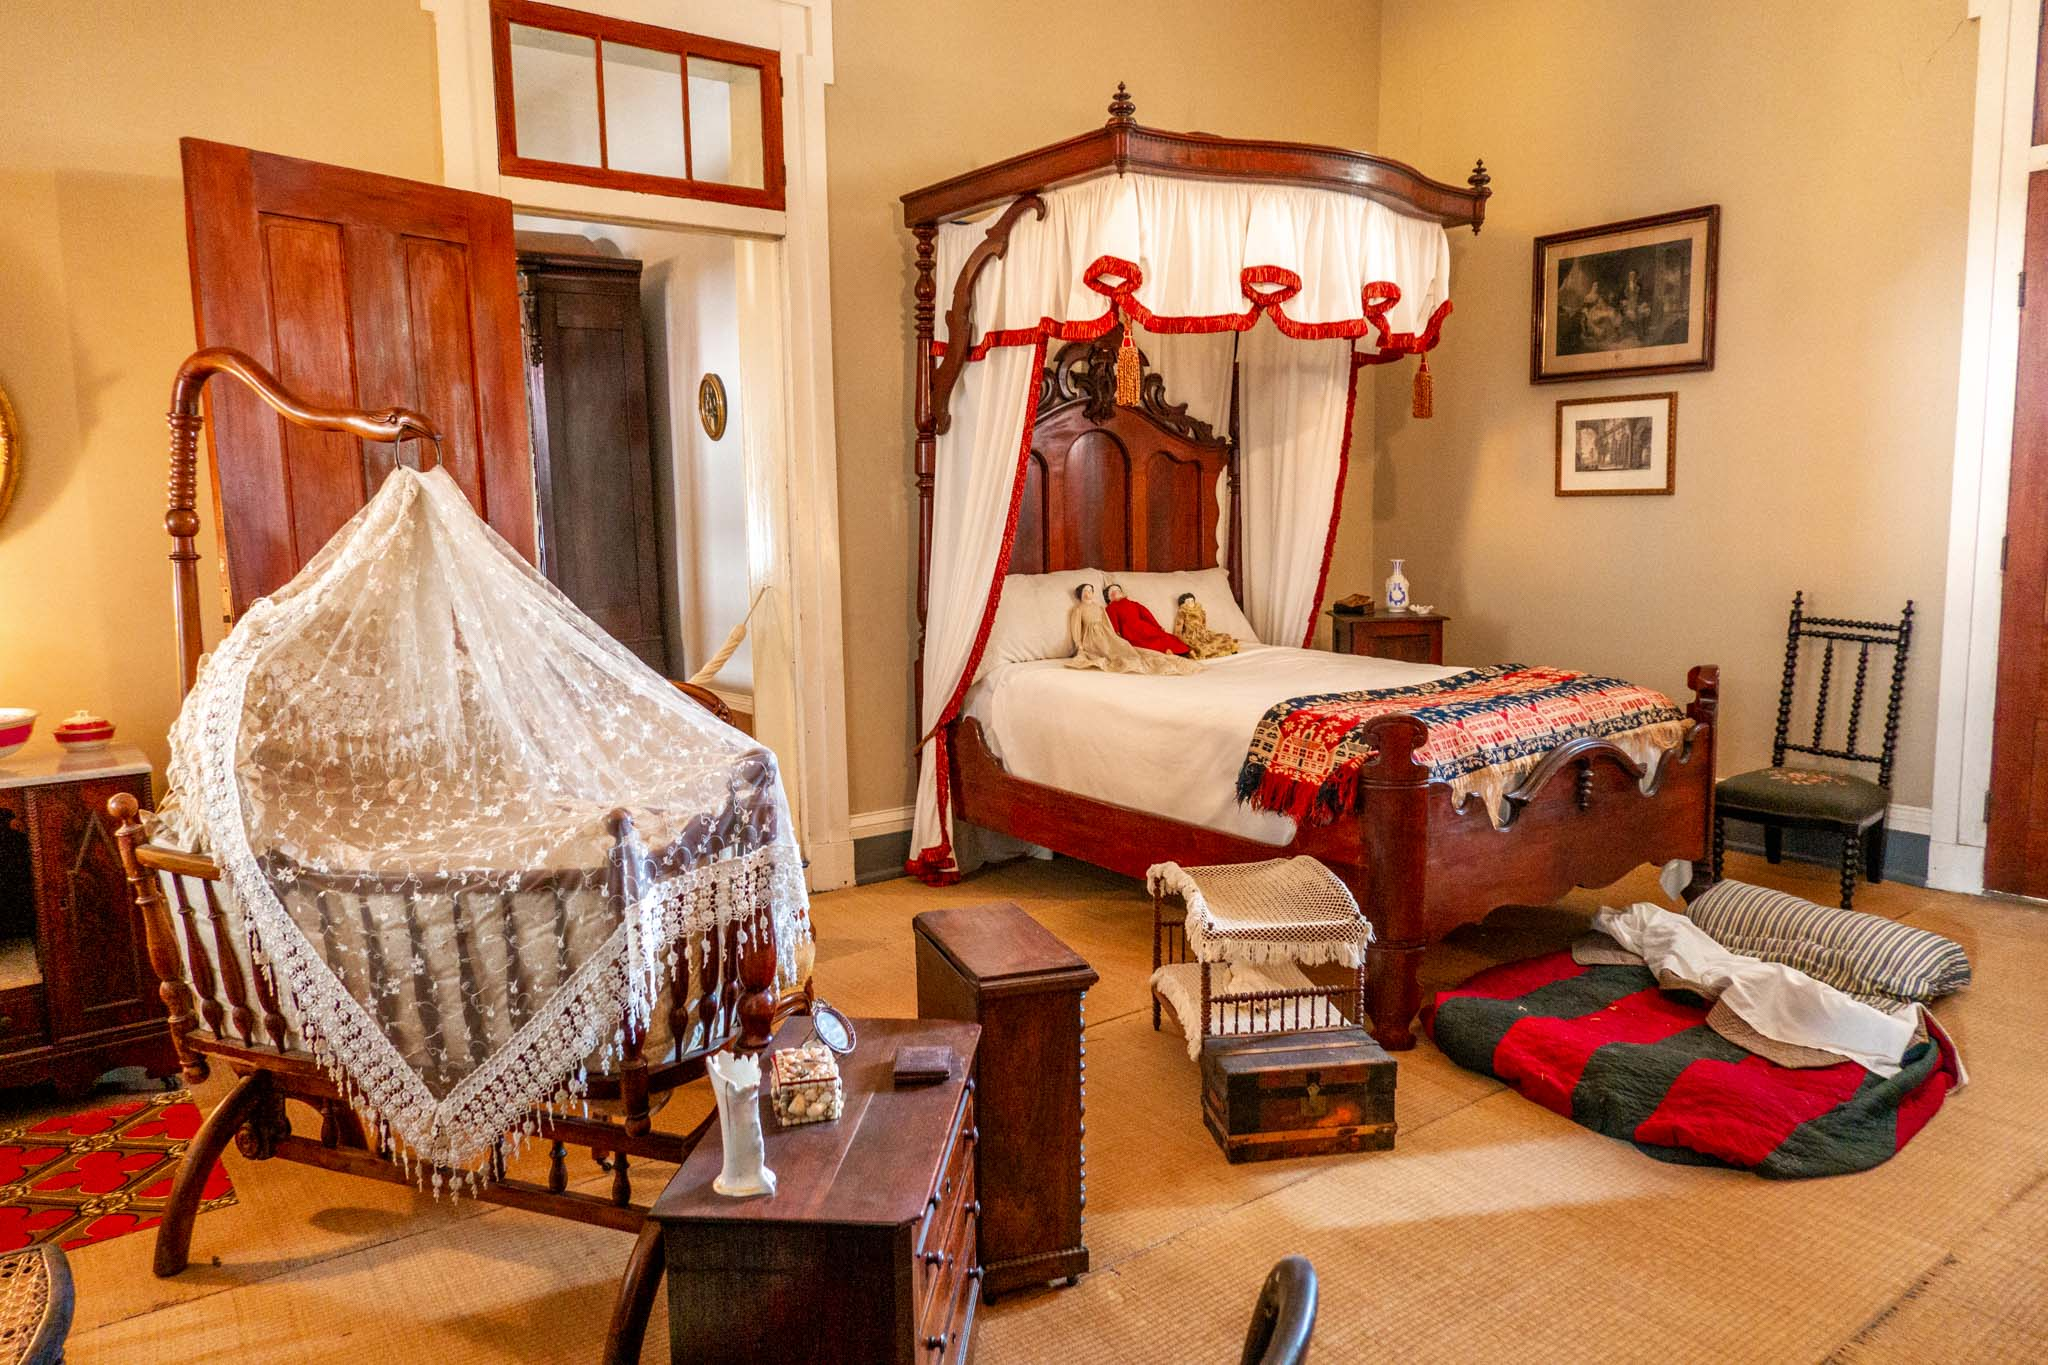 Bed and crib in children's bedroom with slave bed on the floor